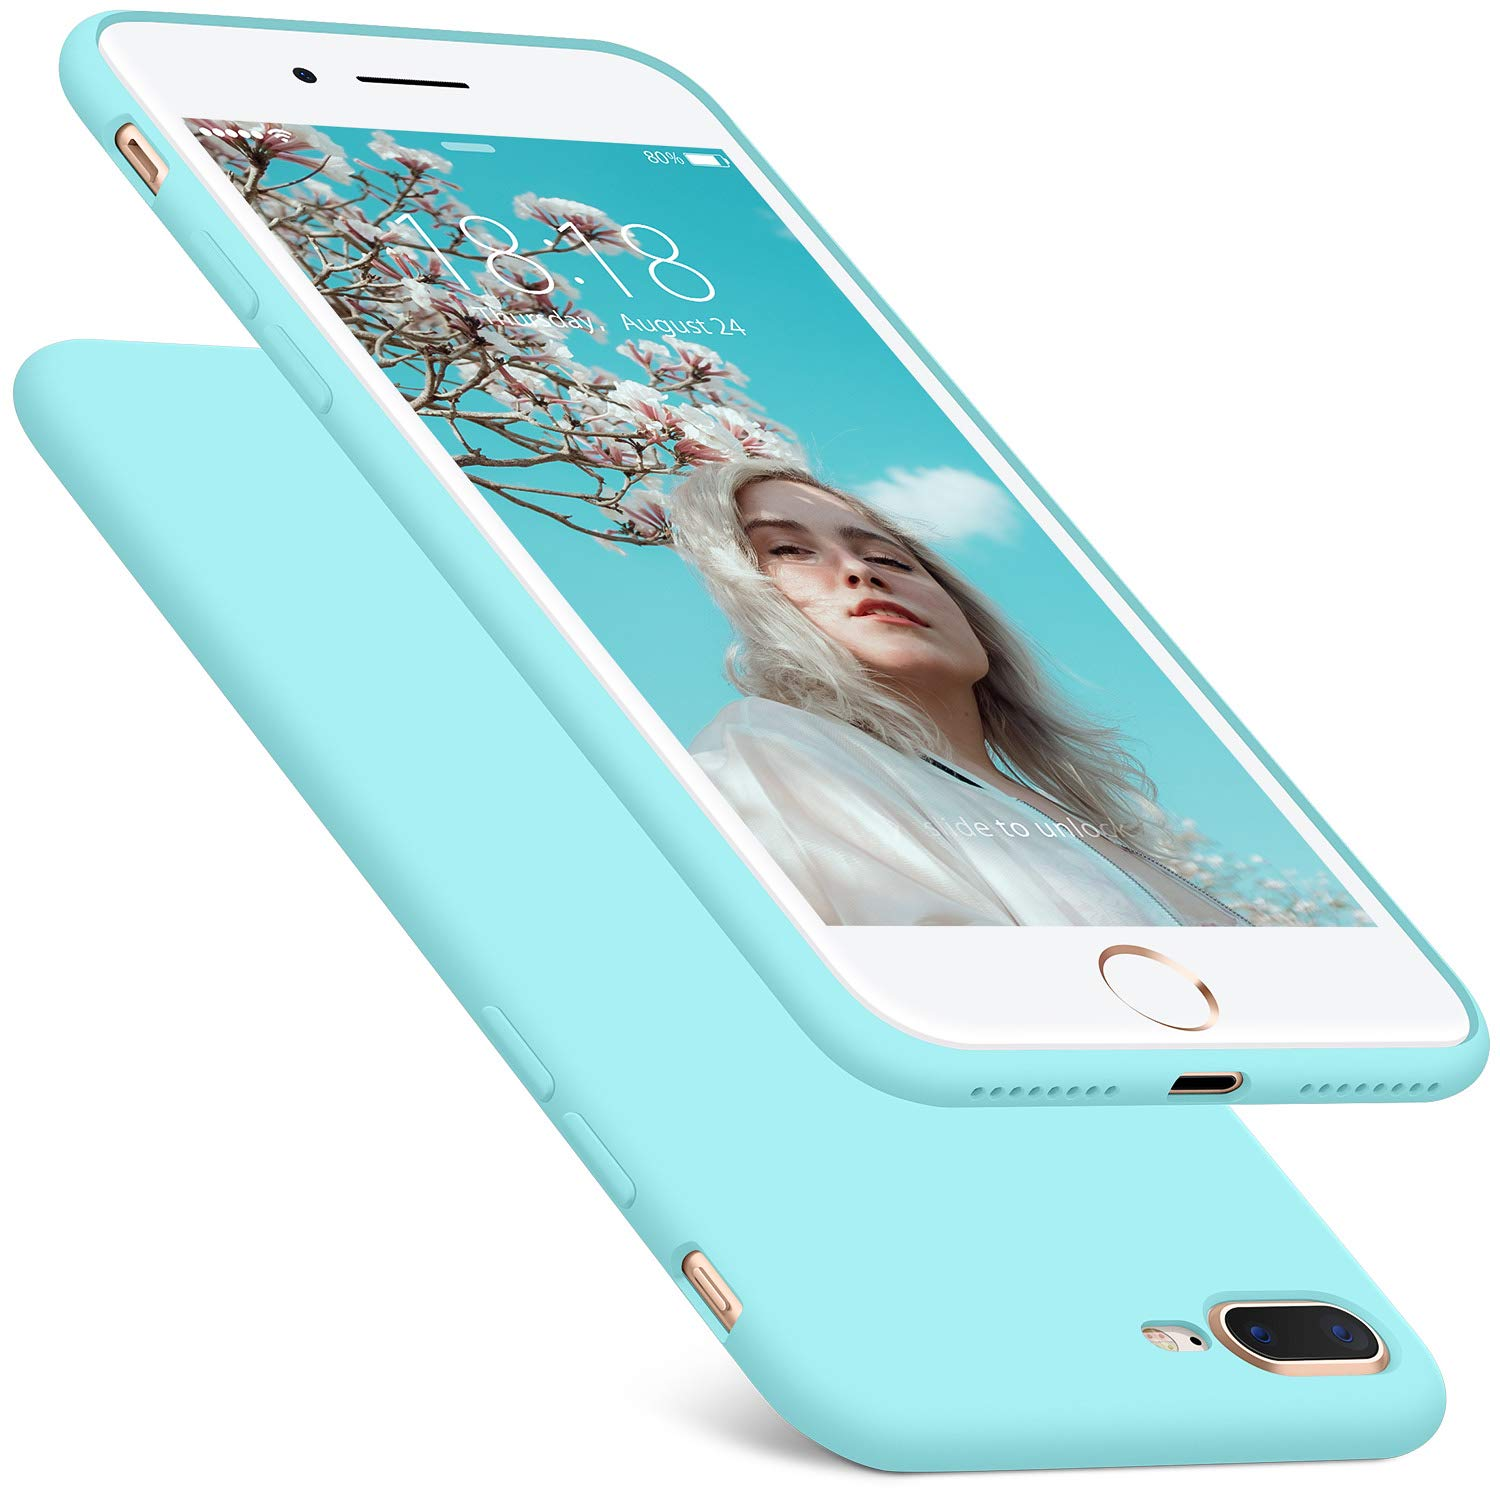 DTTO iPhone 8 Plus Case, iPhone 7 Plus Case, Silicone Case [Romance Series] Rubber Shock-Absorption Anti-Scratch Thin Slim Fit Cover for Apple iPhone 8 Plus 7 Plus 5.5 inches - Light Blue